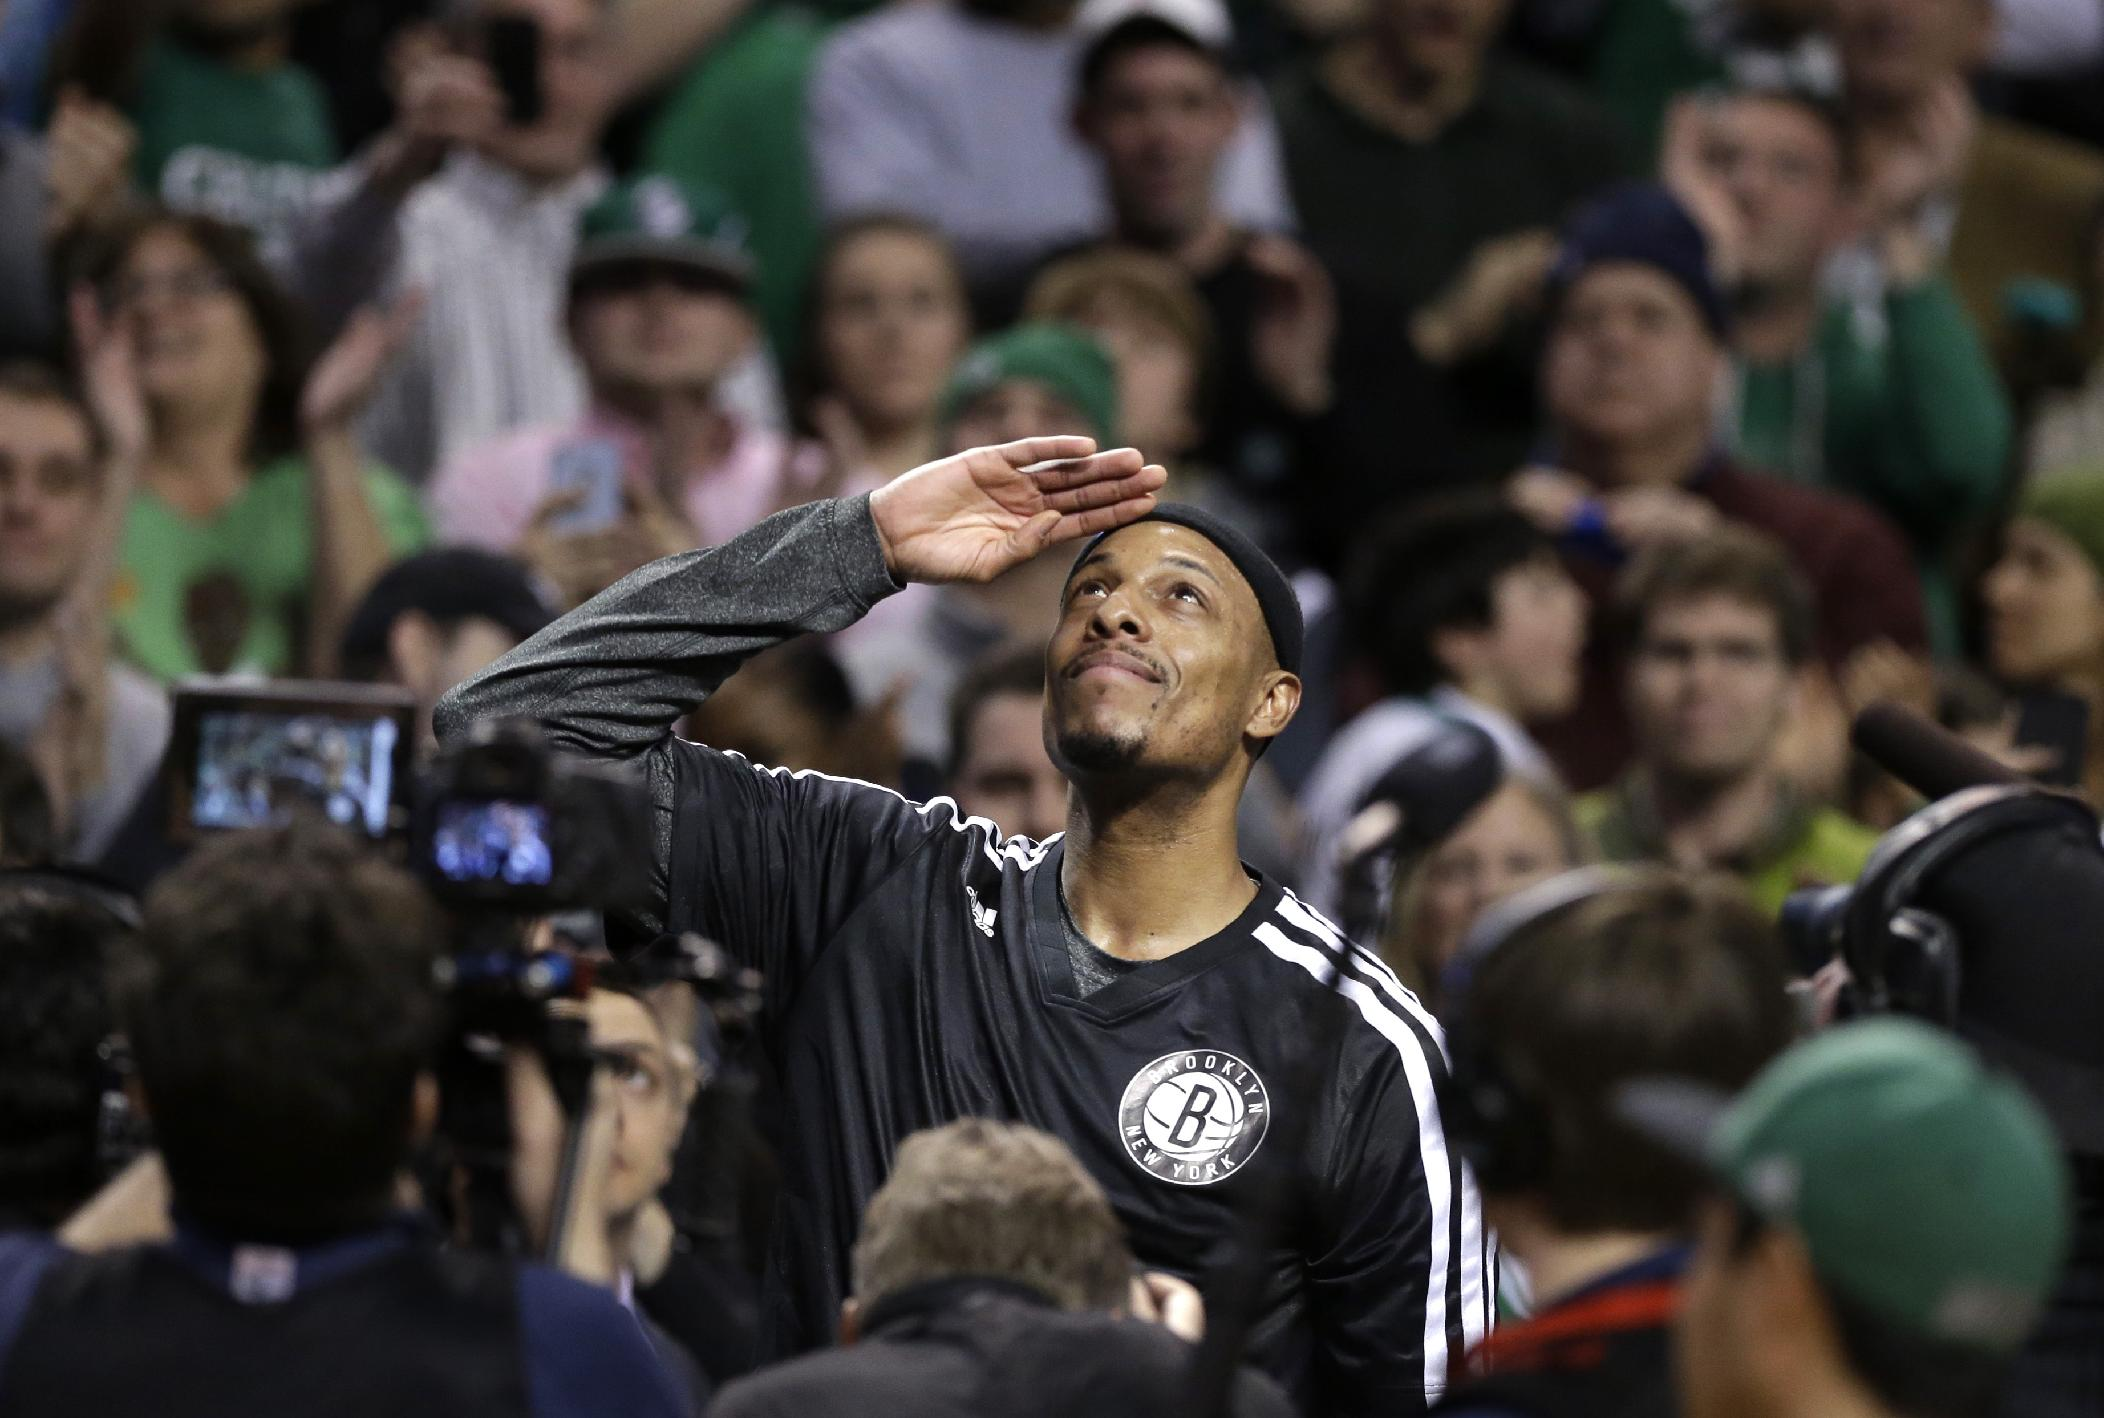 Brooklyn Nets forward Paul Pierce, center, formerly of the Boston Celtics, salutes the crowd during a tribute to him in the first half of an NBA basketball game against the Boston Celtics, Sunday, Jan. 26, 2014, in Boston